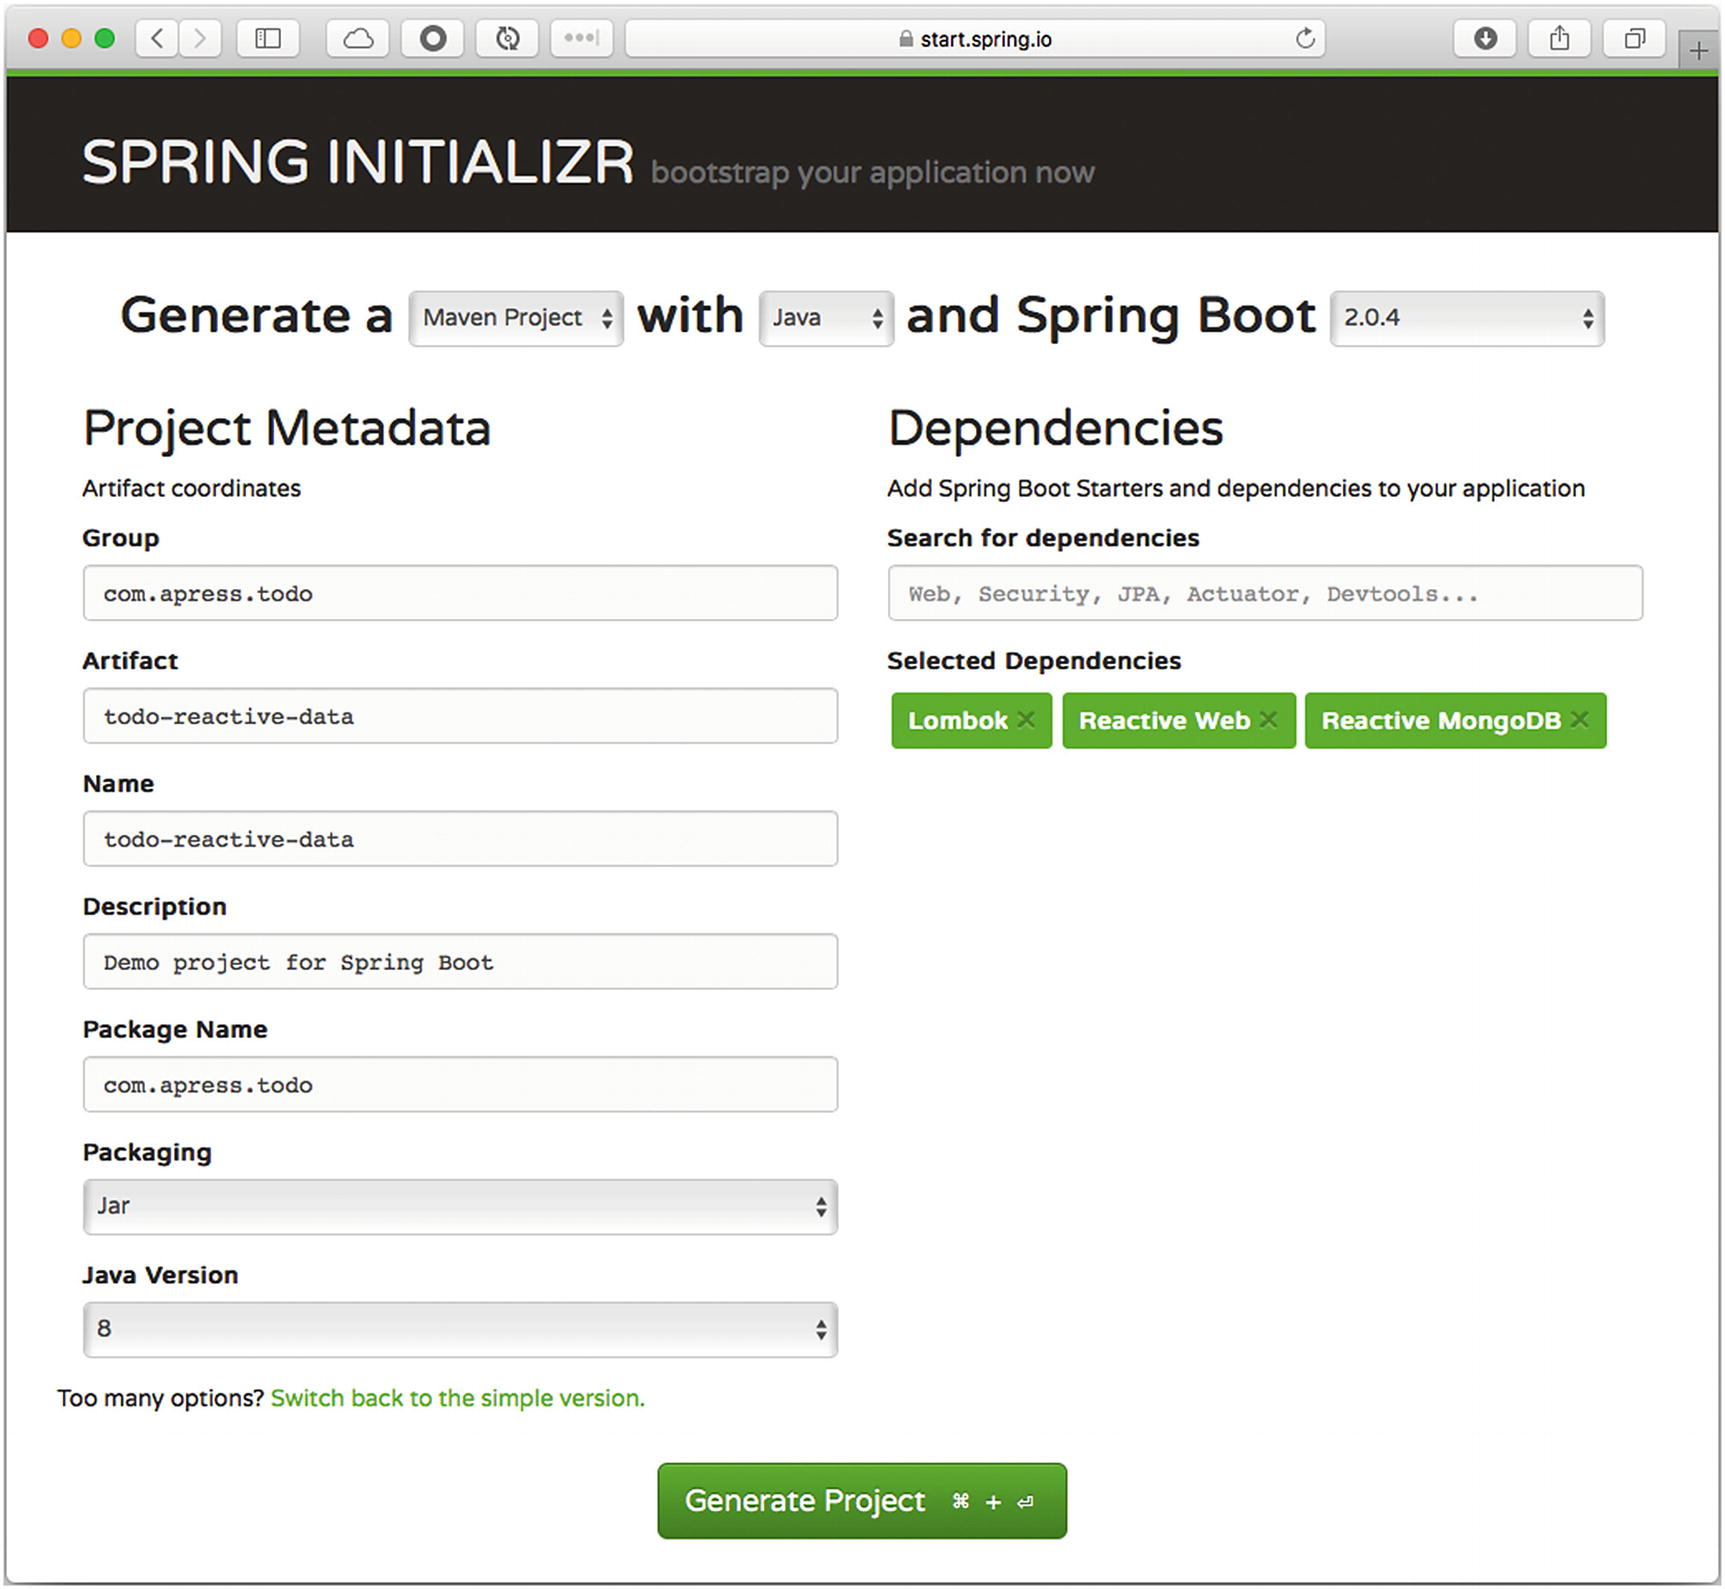 WebFlux and Reactive Data with Spring Boot | SpringerLink